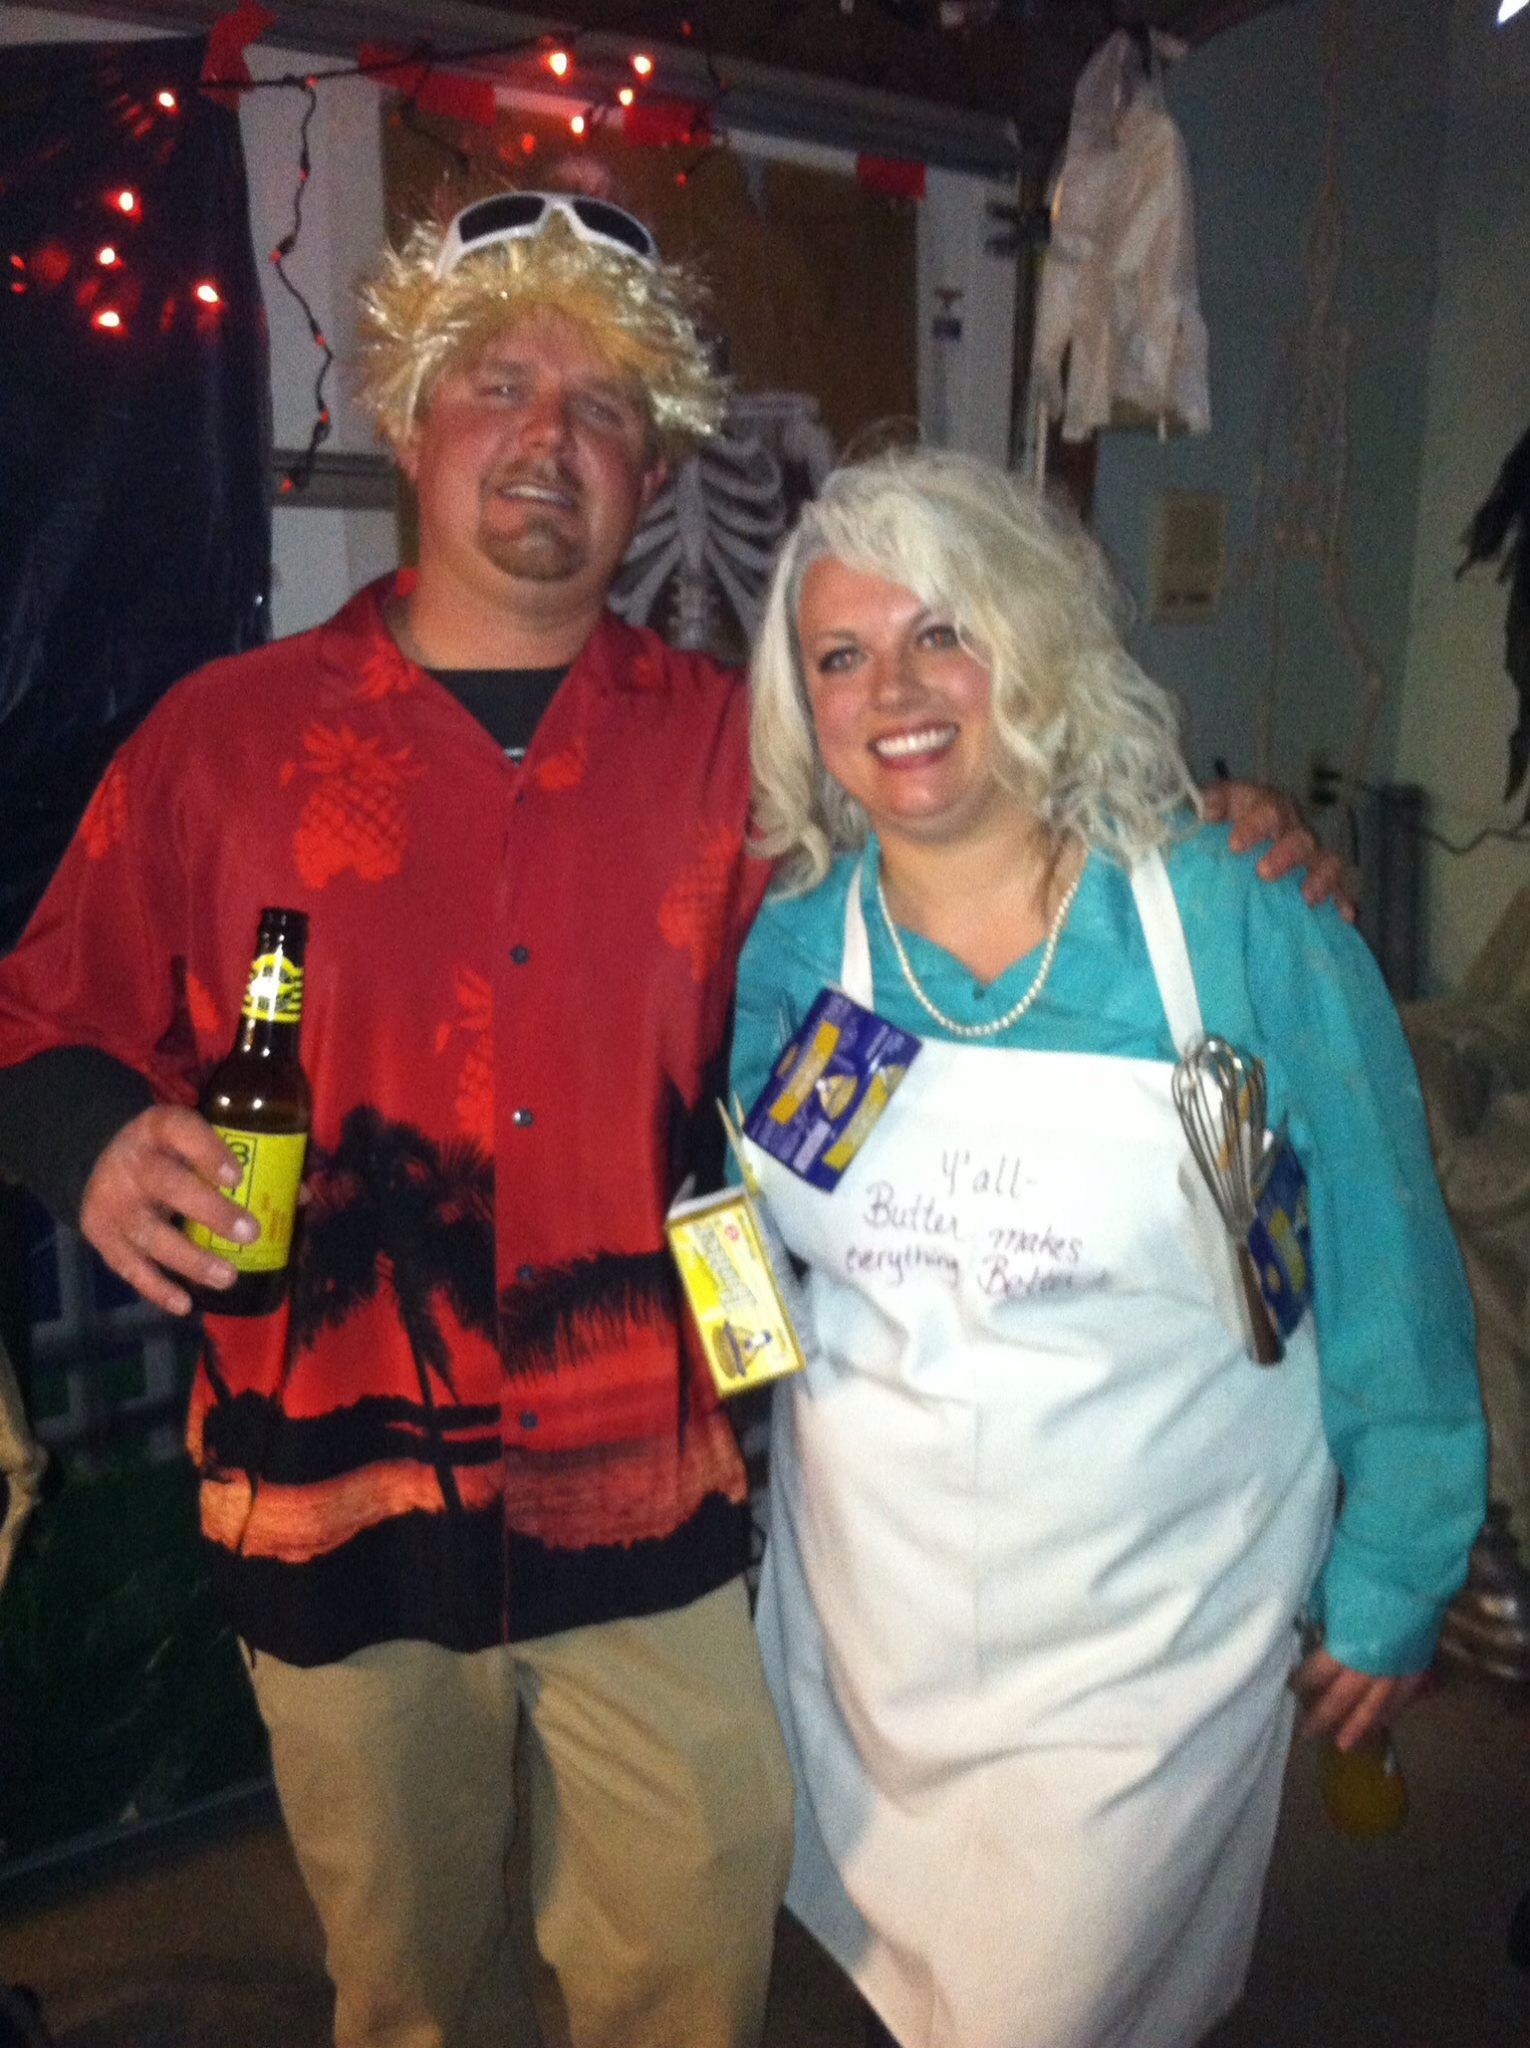 Paula Deen And Guy Fieri Couples Costume Coupleshalloweencostume